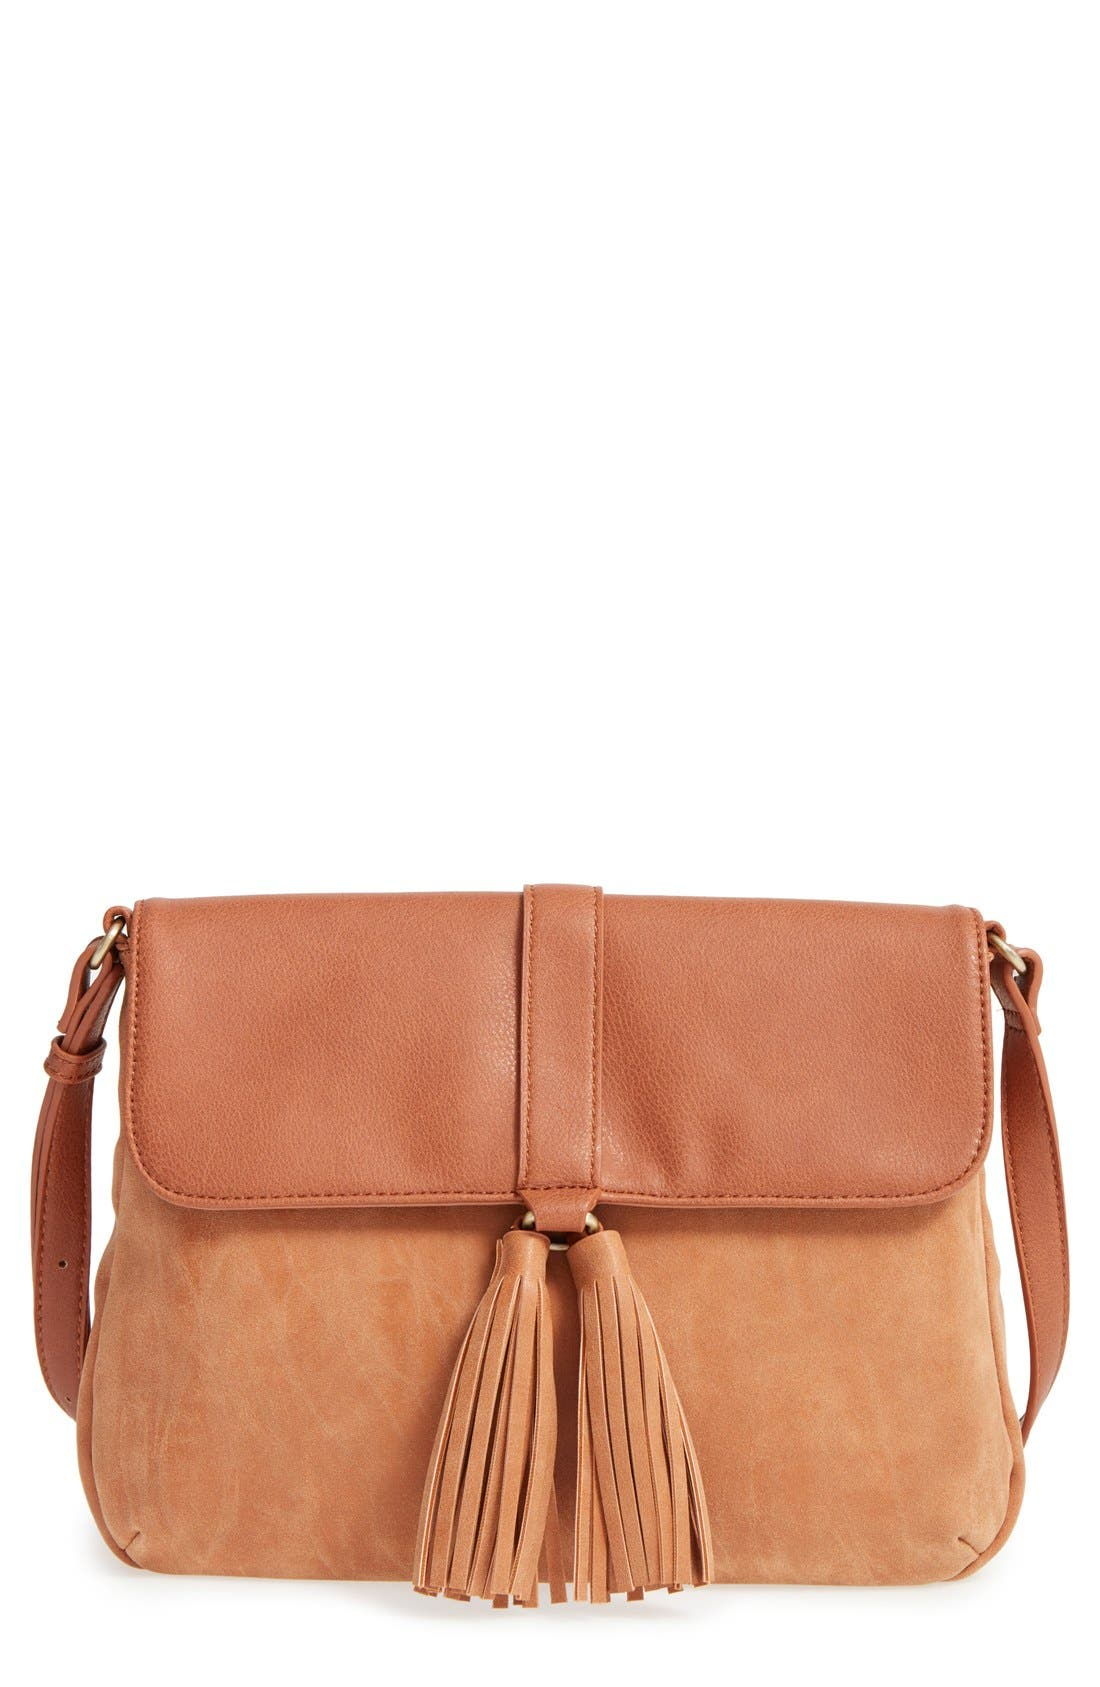 Alternate Image 1 Selected - Sole Society Faux Leather Crossbody Bag